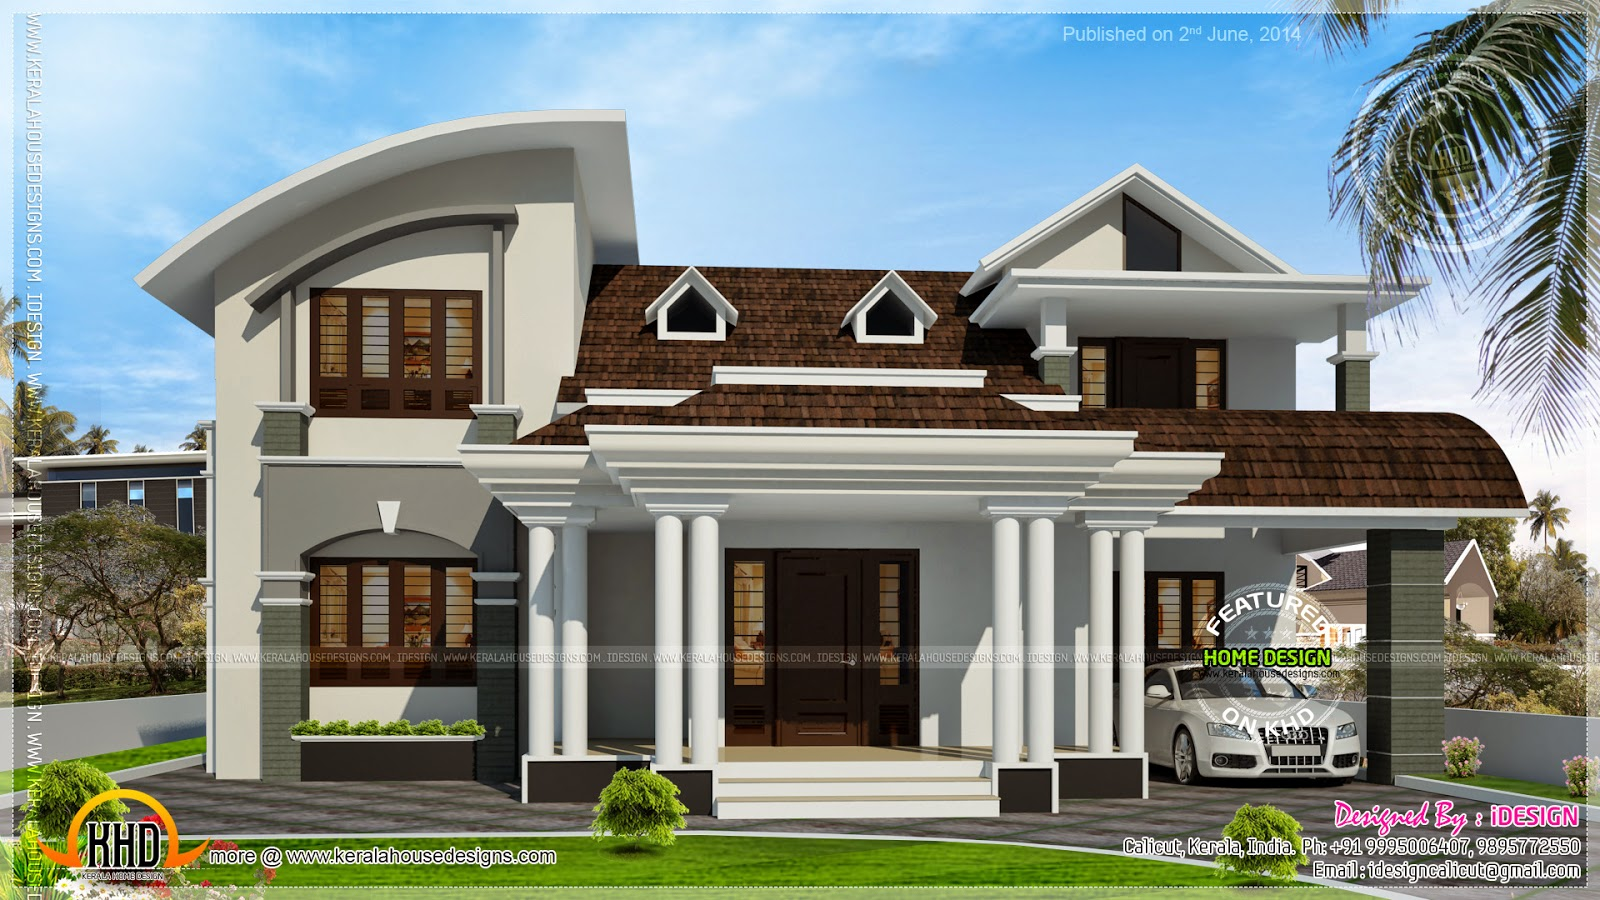 Siddu buzz online kerala home design for House windows online